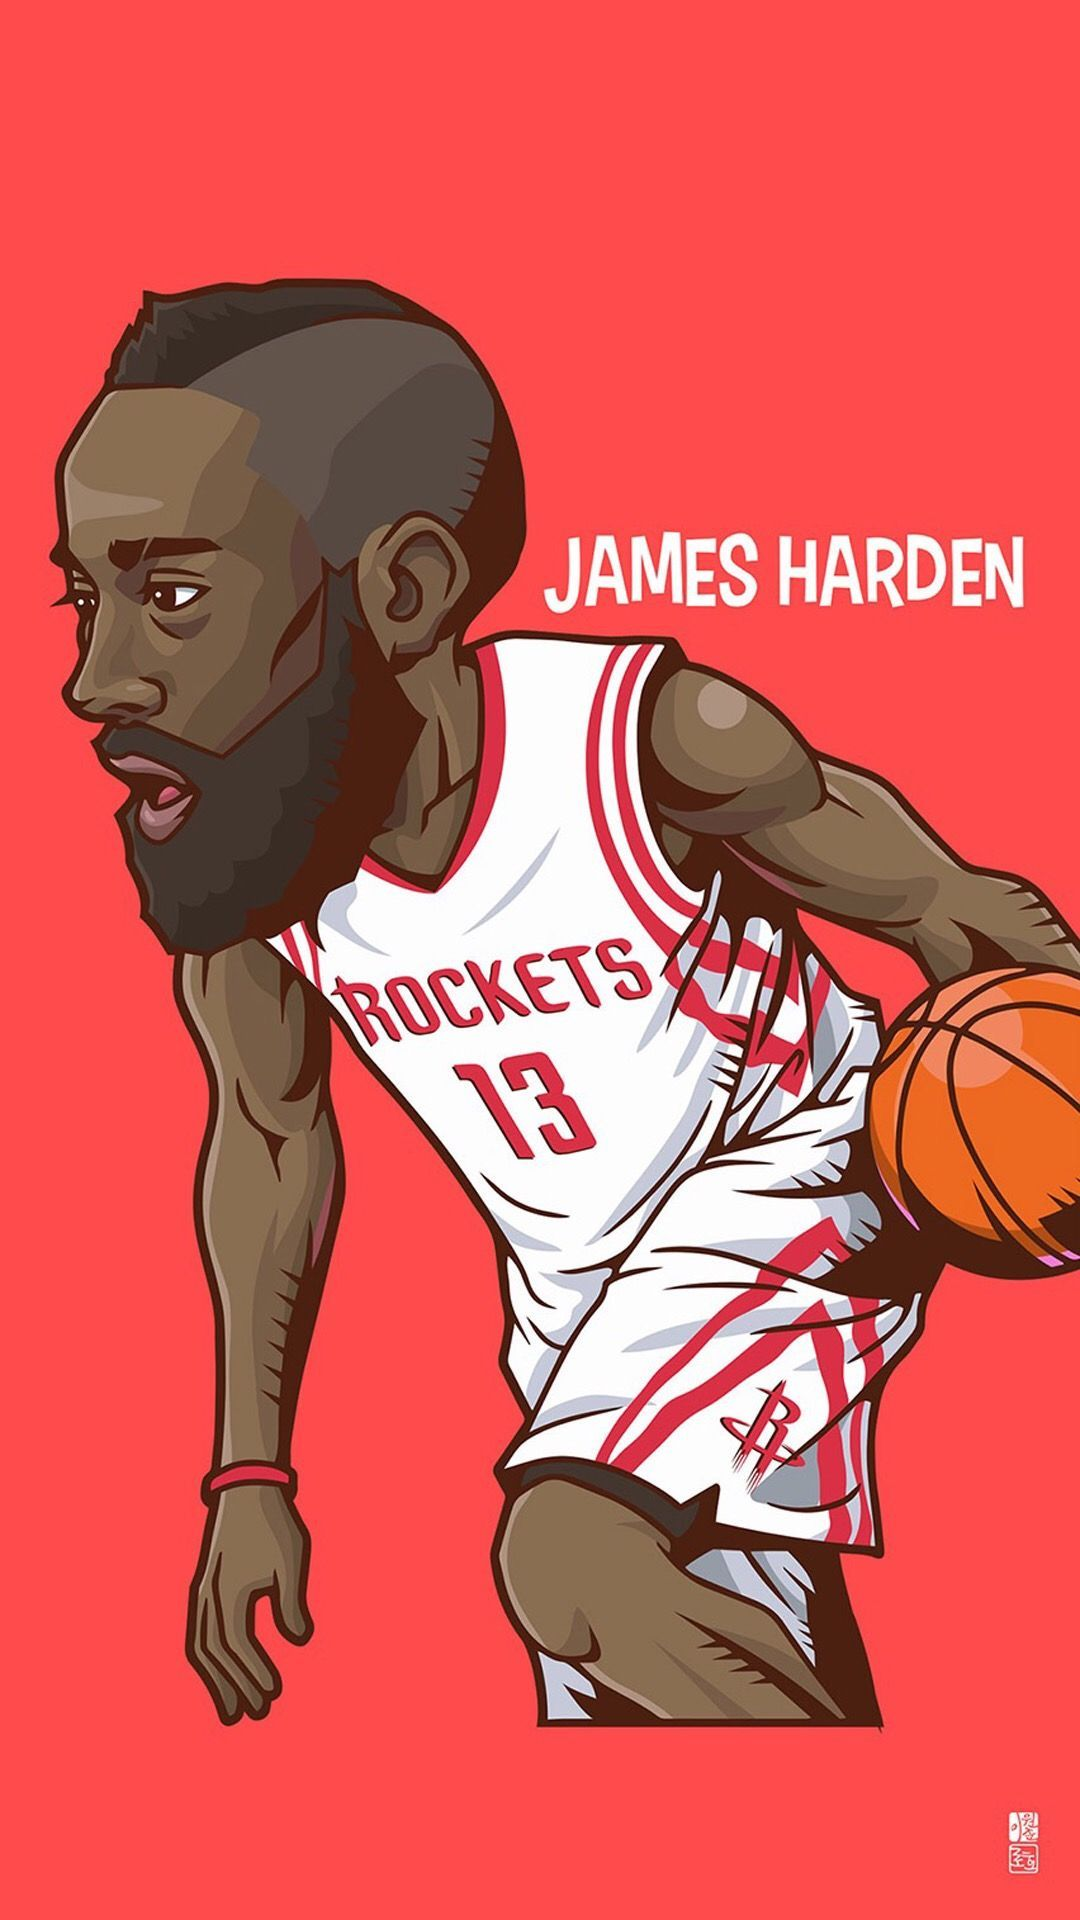 1080x1920 James Harden 1080 x 1920 Wallpapers available for free ...